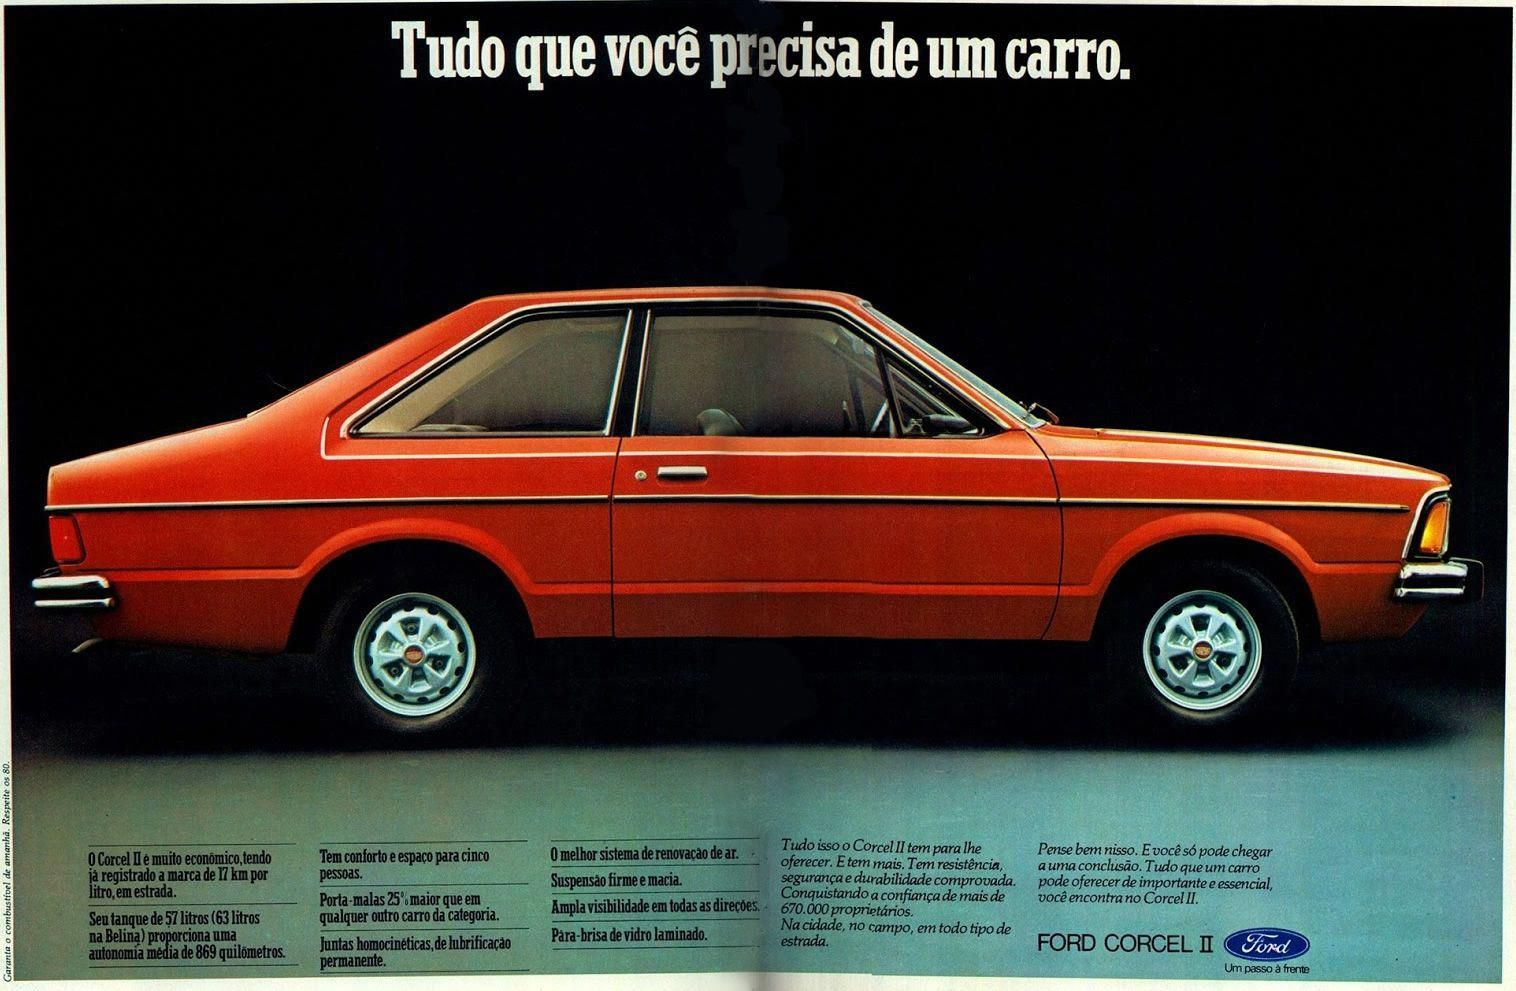 Ford Corcel Ii 1978 Historical Advertisements Old